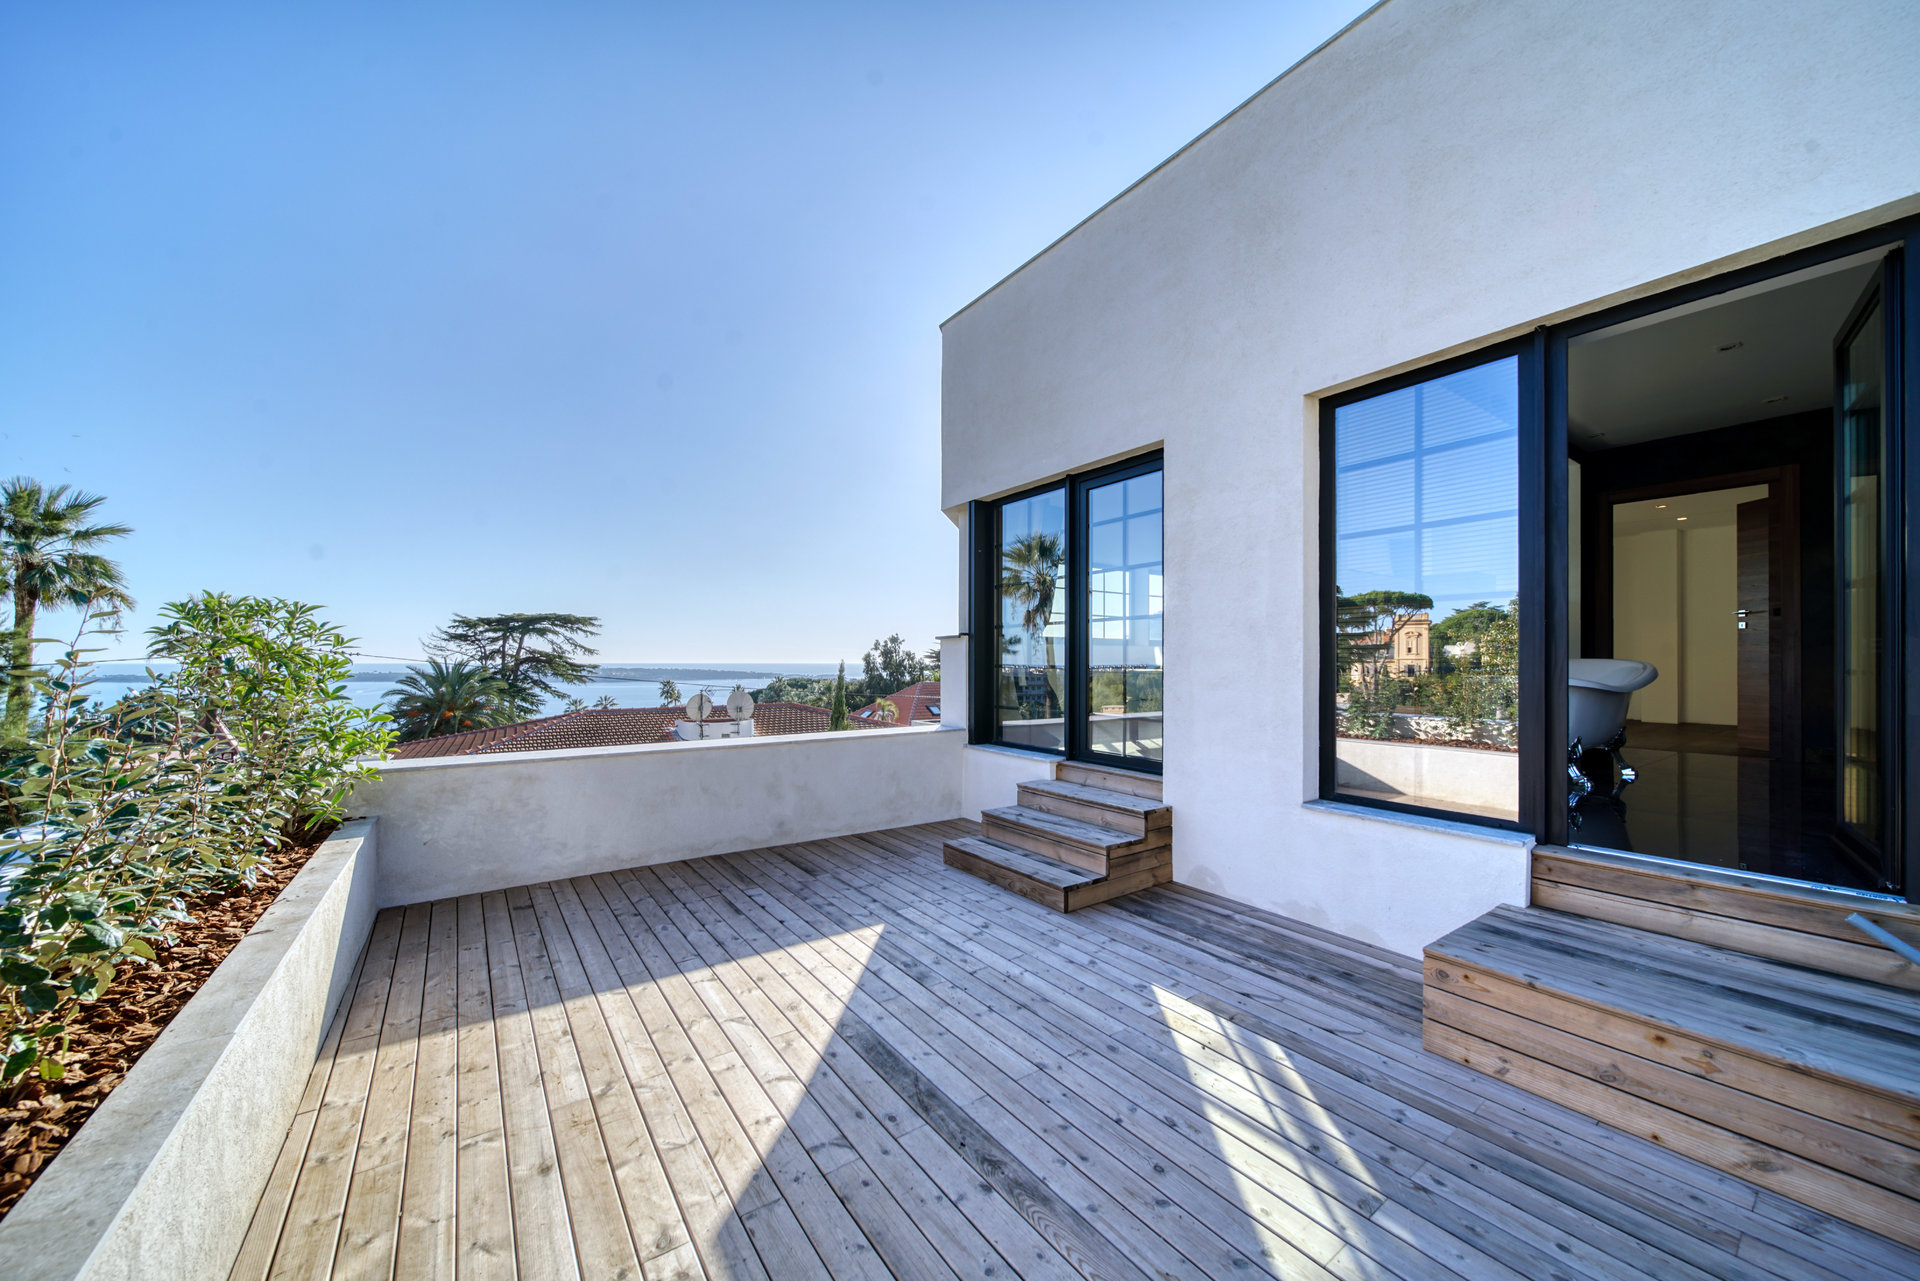 CANNES CALIFORNIE – VILLA ART DÉCO